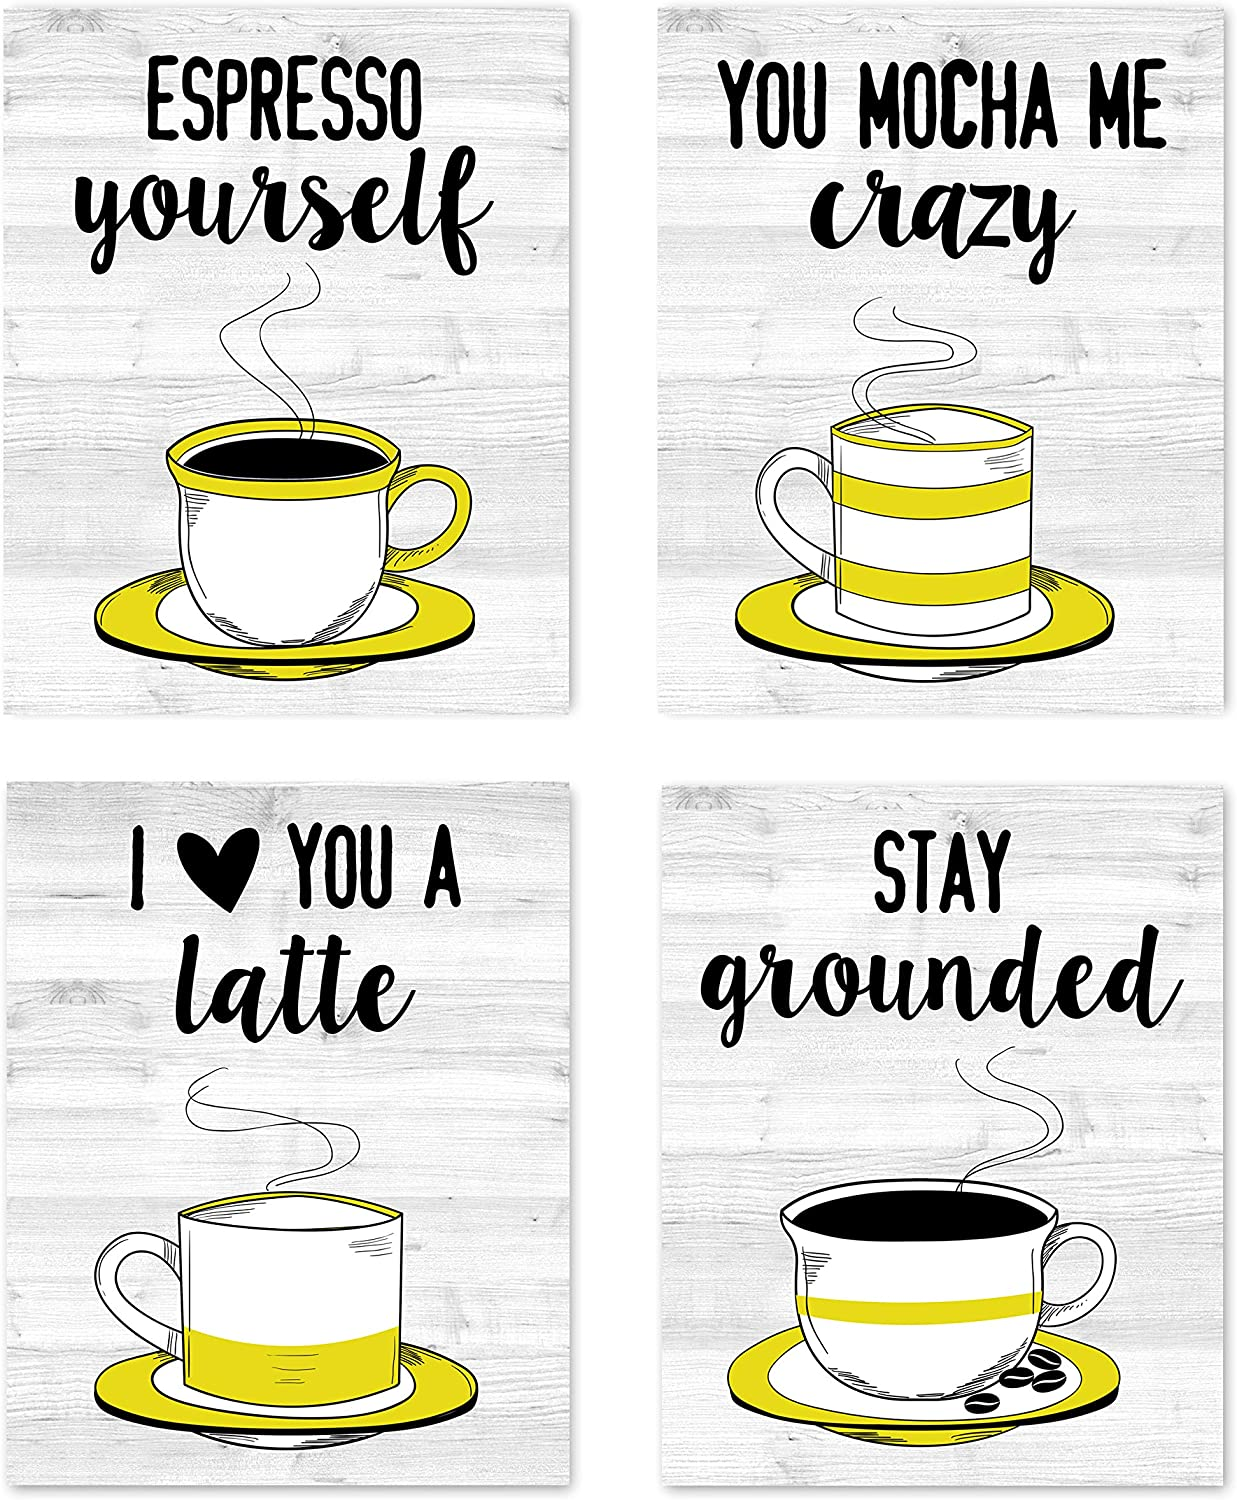 """Retro Vintage Inspirational Kitchen Restaurant Wall Art Coffee Mugs Tea Prints Posters Signs Funny Puns Sayings Quotes for Rustic Modern Farmhouse Country Home and Dining Decor Decorations Set of 4 Unframed 8"""" x 10"""" Yellow Black & White"""